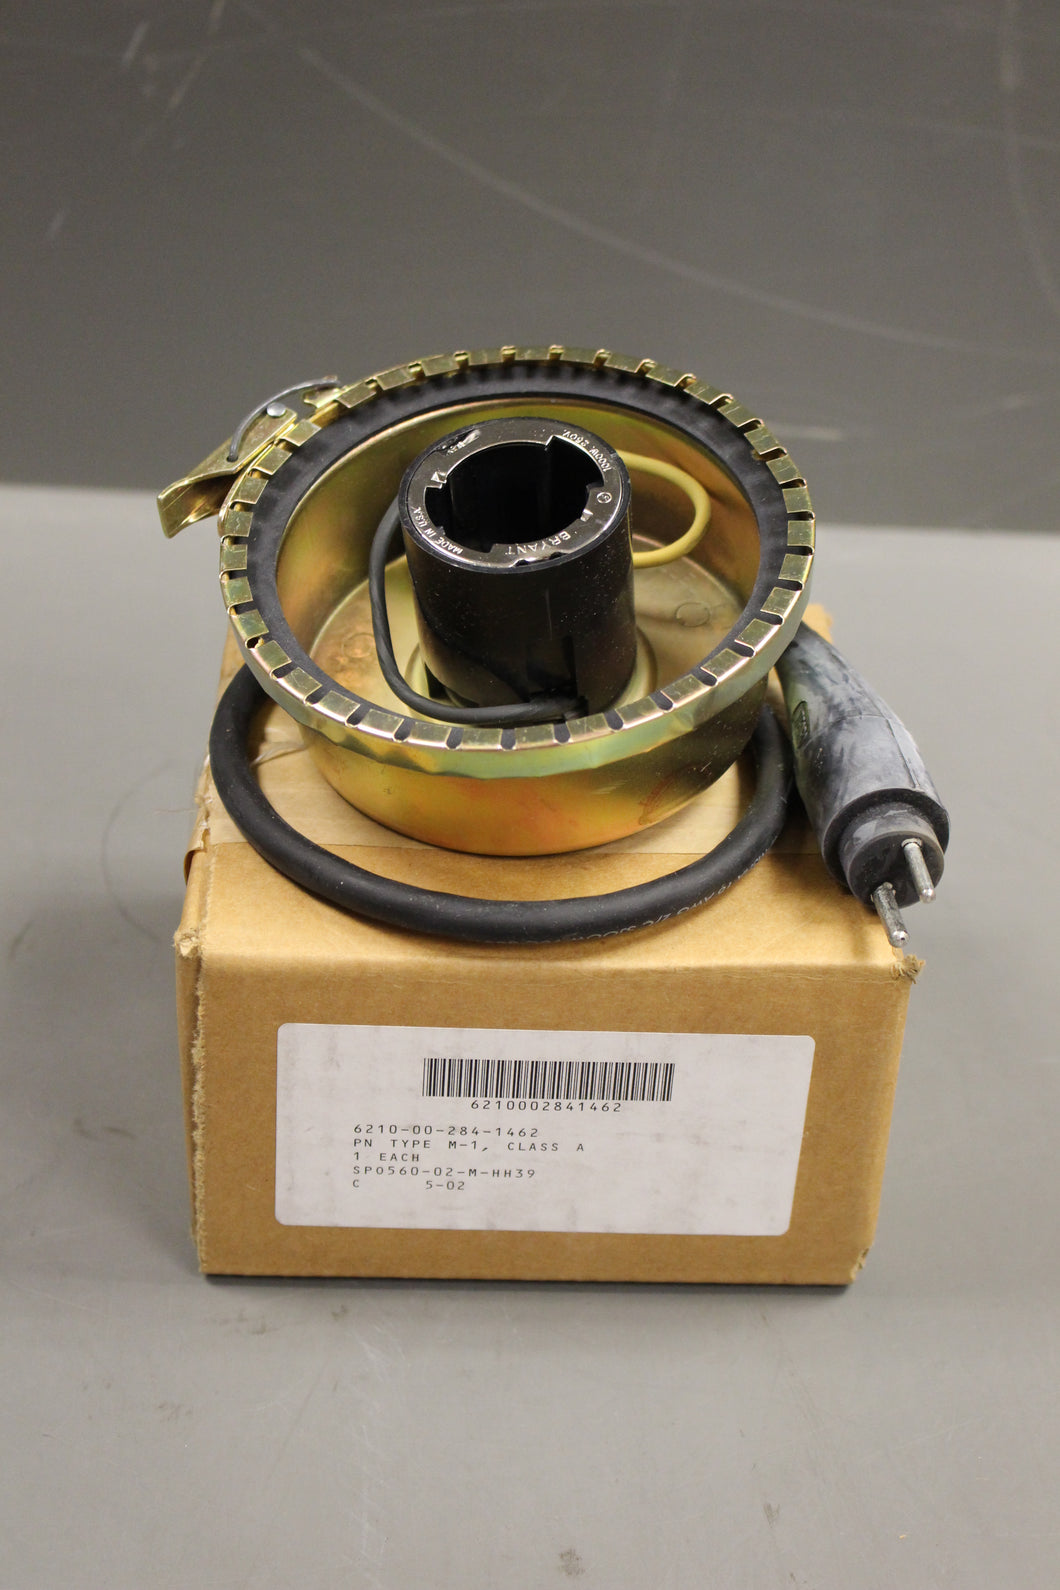 Fixture Assembly, 6210-00-284-1462, P/N 980-1, New!